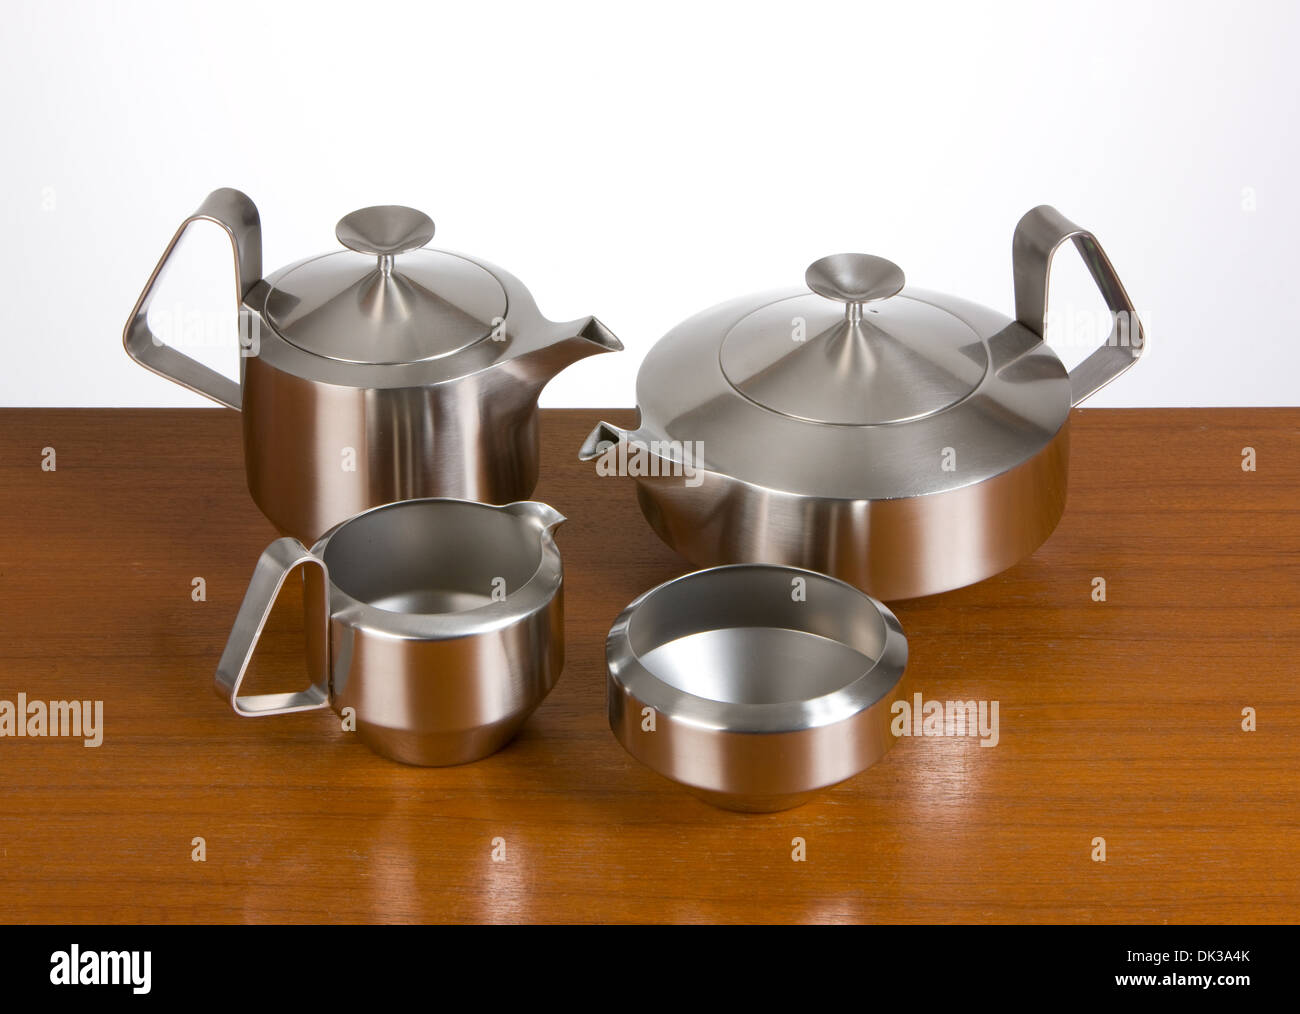 Vintage English Stainless Steel Alveston teaset designed for Old Hall by Robert Welch - Stock Image